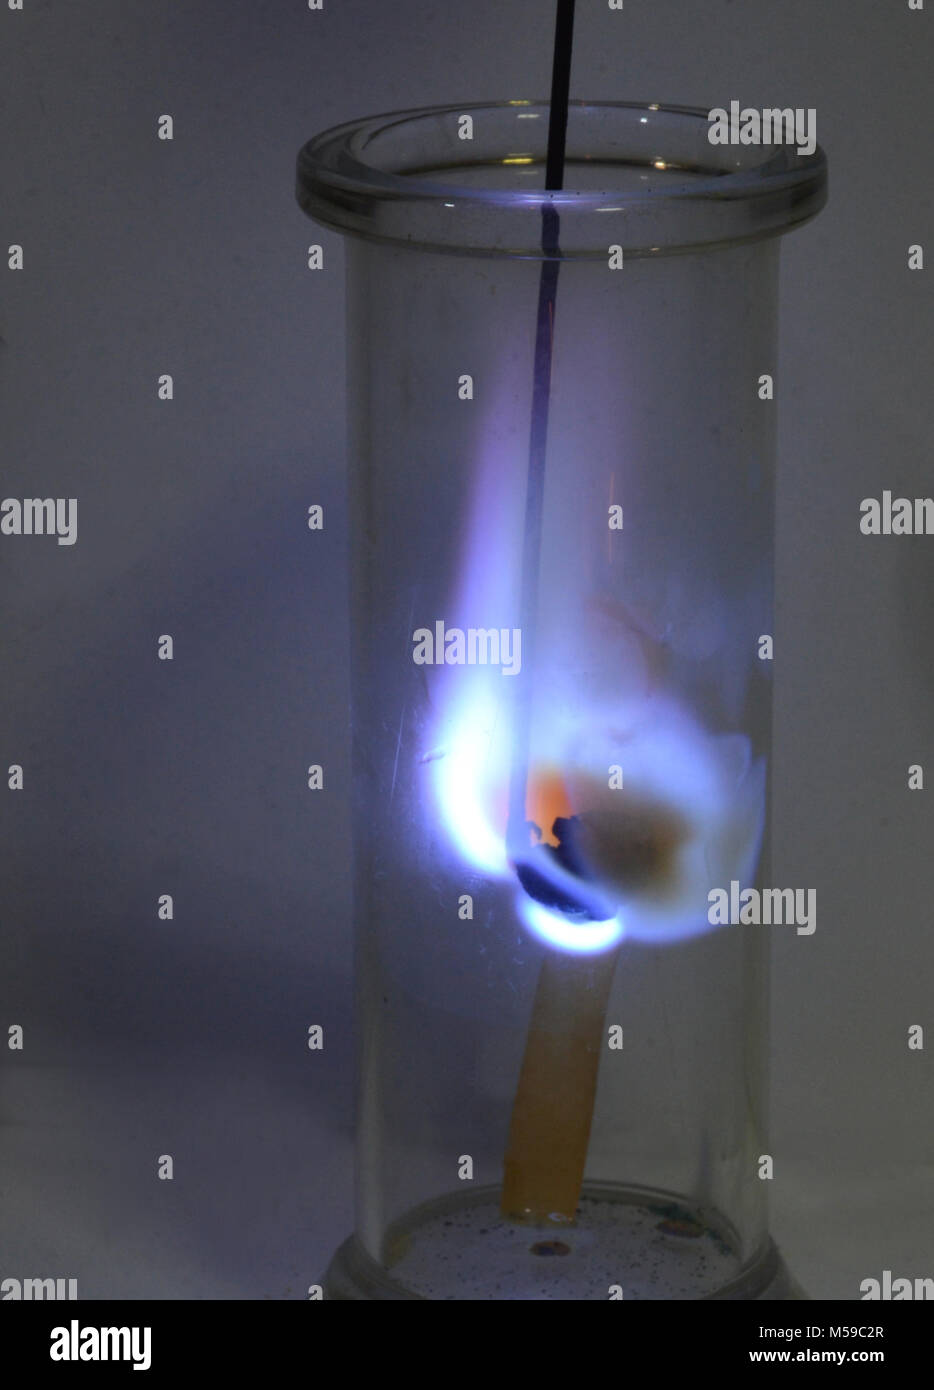 Sulphur burning in a glass with oxygencausing yellowish-brown smoke, a vet strip of indicator paper takes an orange - Stock Image